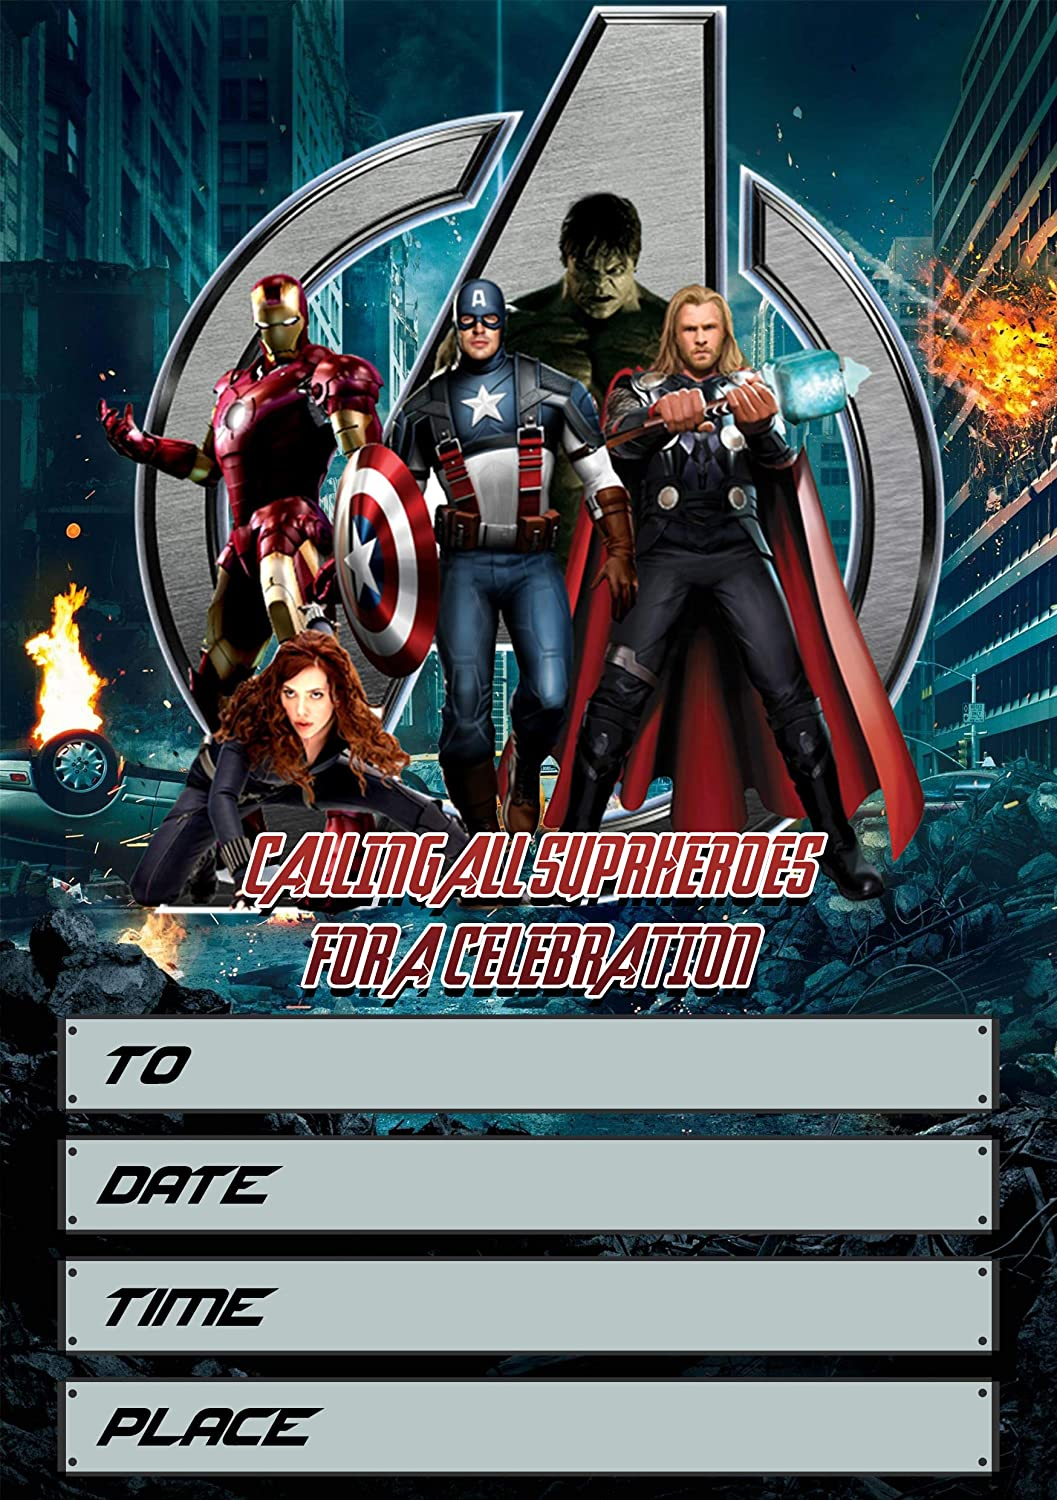 Avengers Invitation Cards – 7 Fill-in Invites for Kids Birthday Bash and  Theme Party, 7X7 cm, Postcard Style